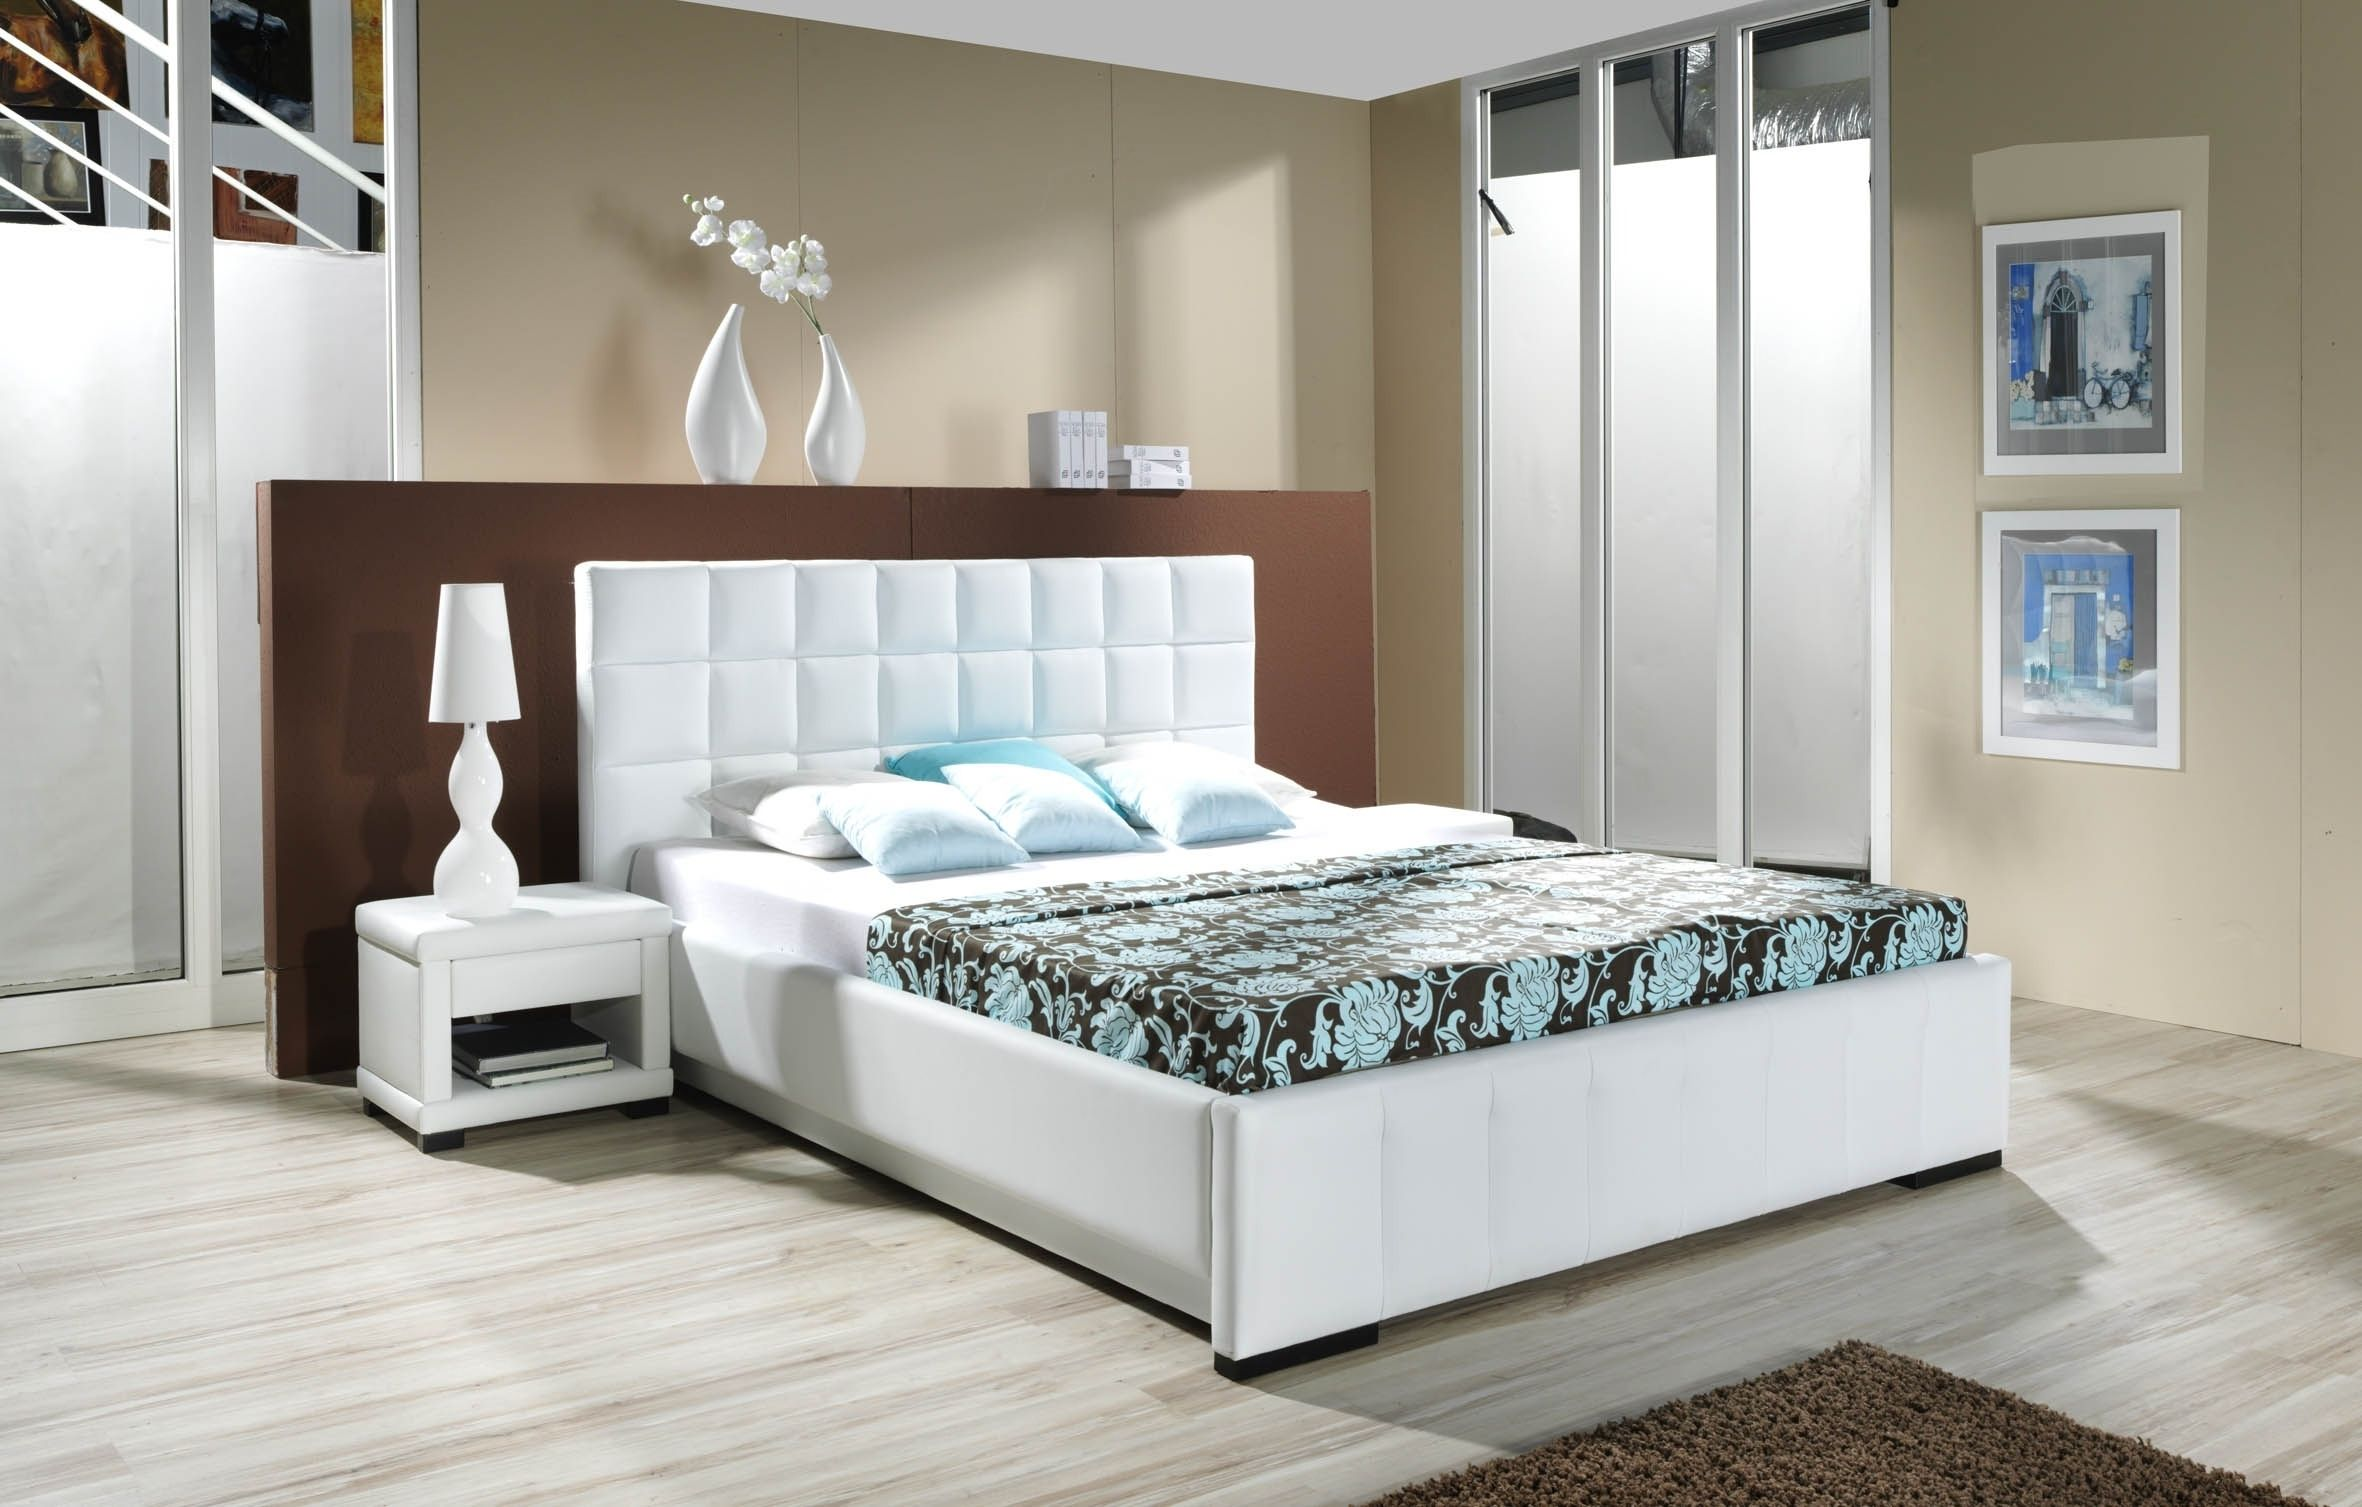 Ikea Design Bedroom Adorable Contemporary Home Decoration Using Ikea Bedrooms For Young Adults 2018